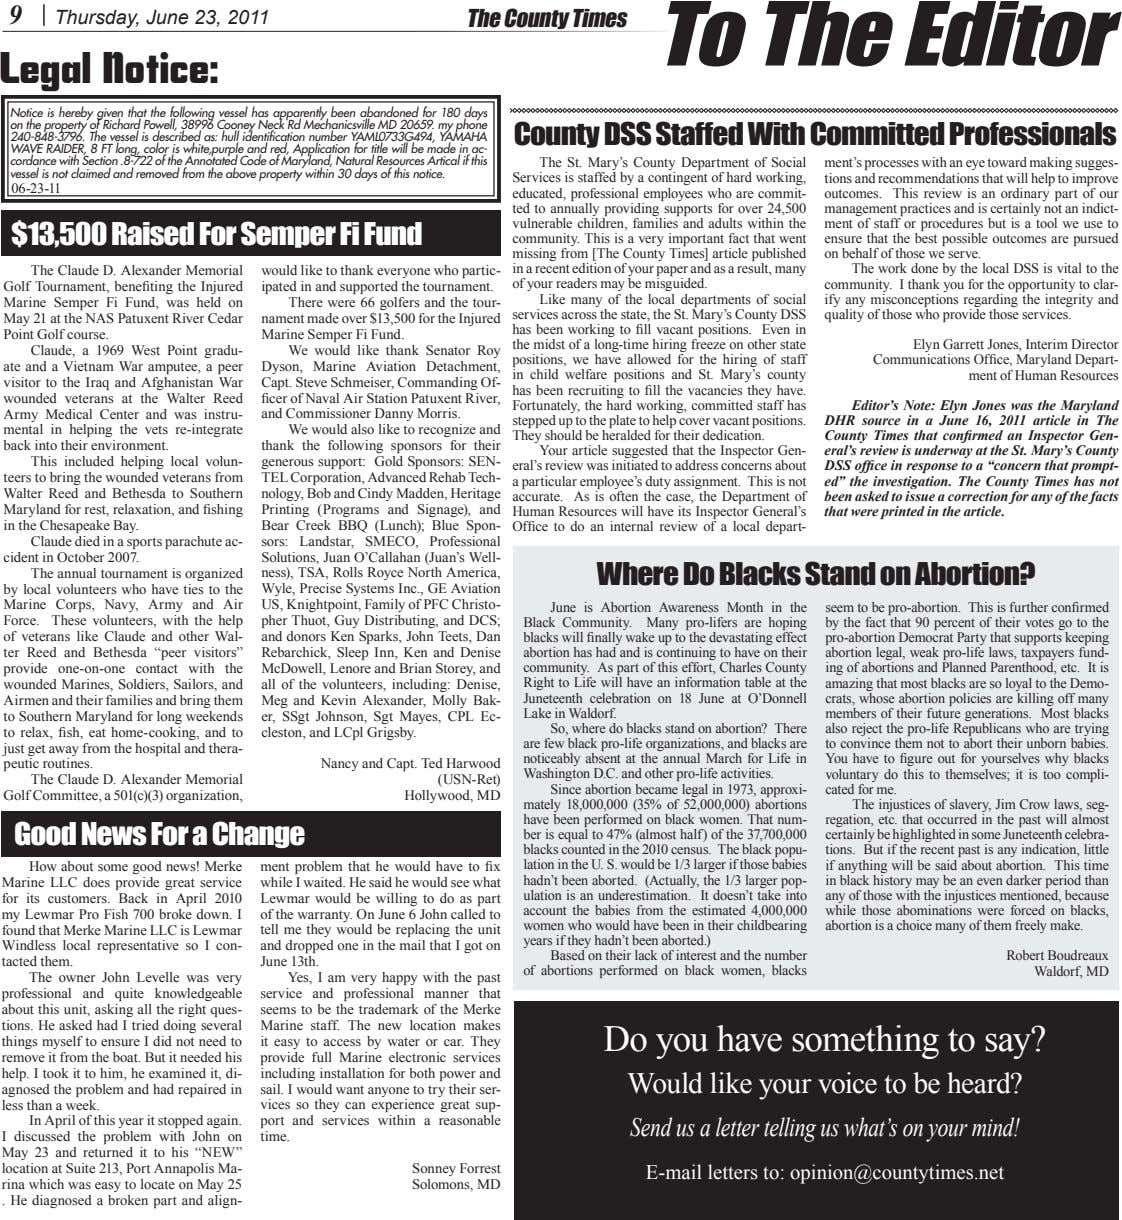 9 Thursday, June 23, 2011 The County Times To The Editor Legal Notice: Notice is